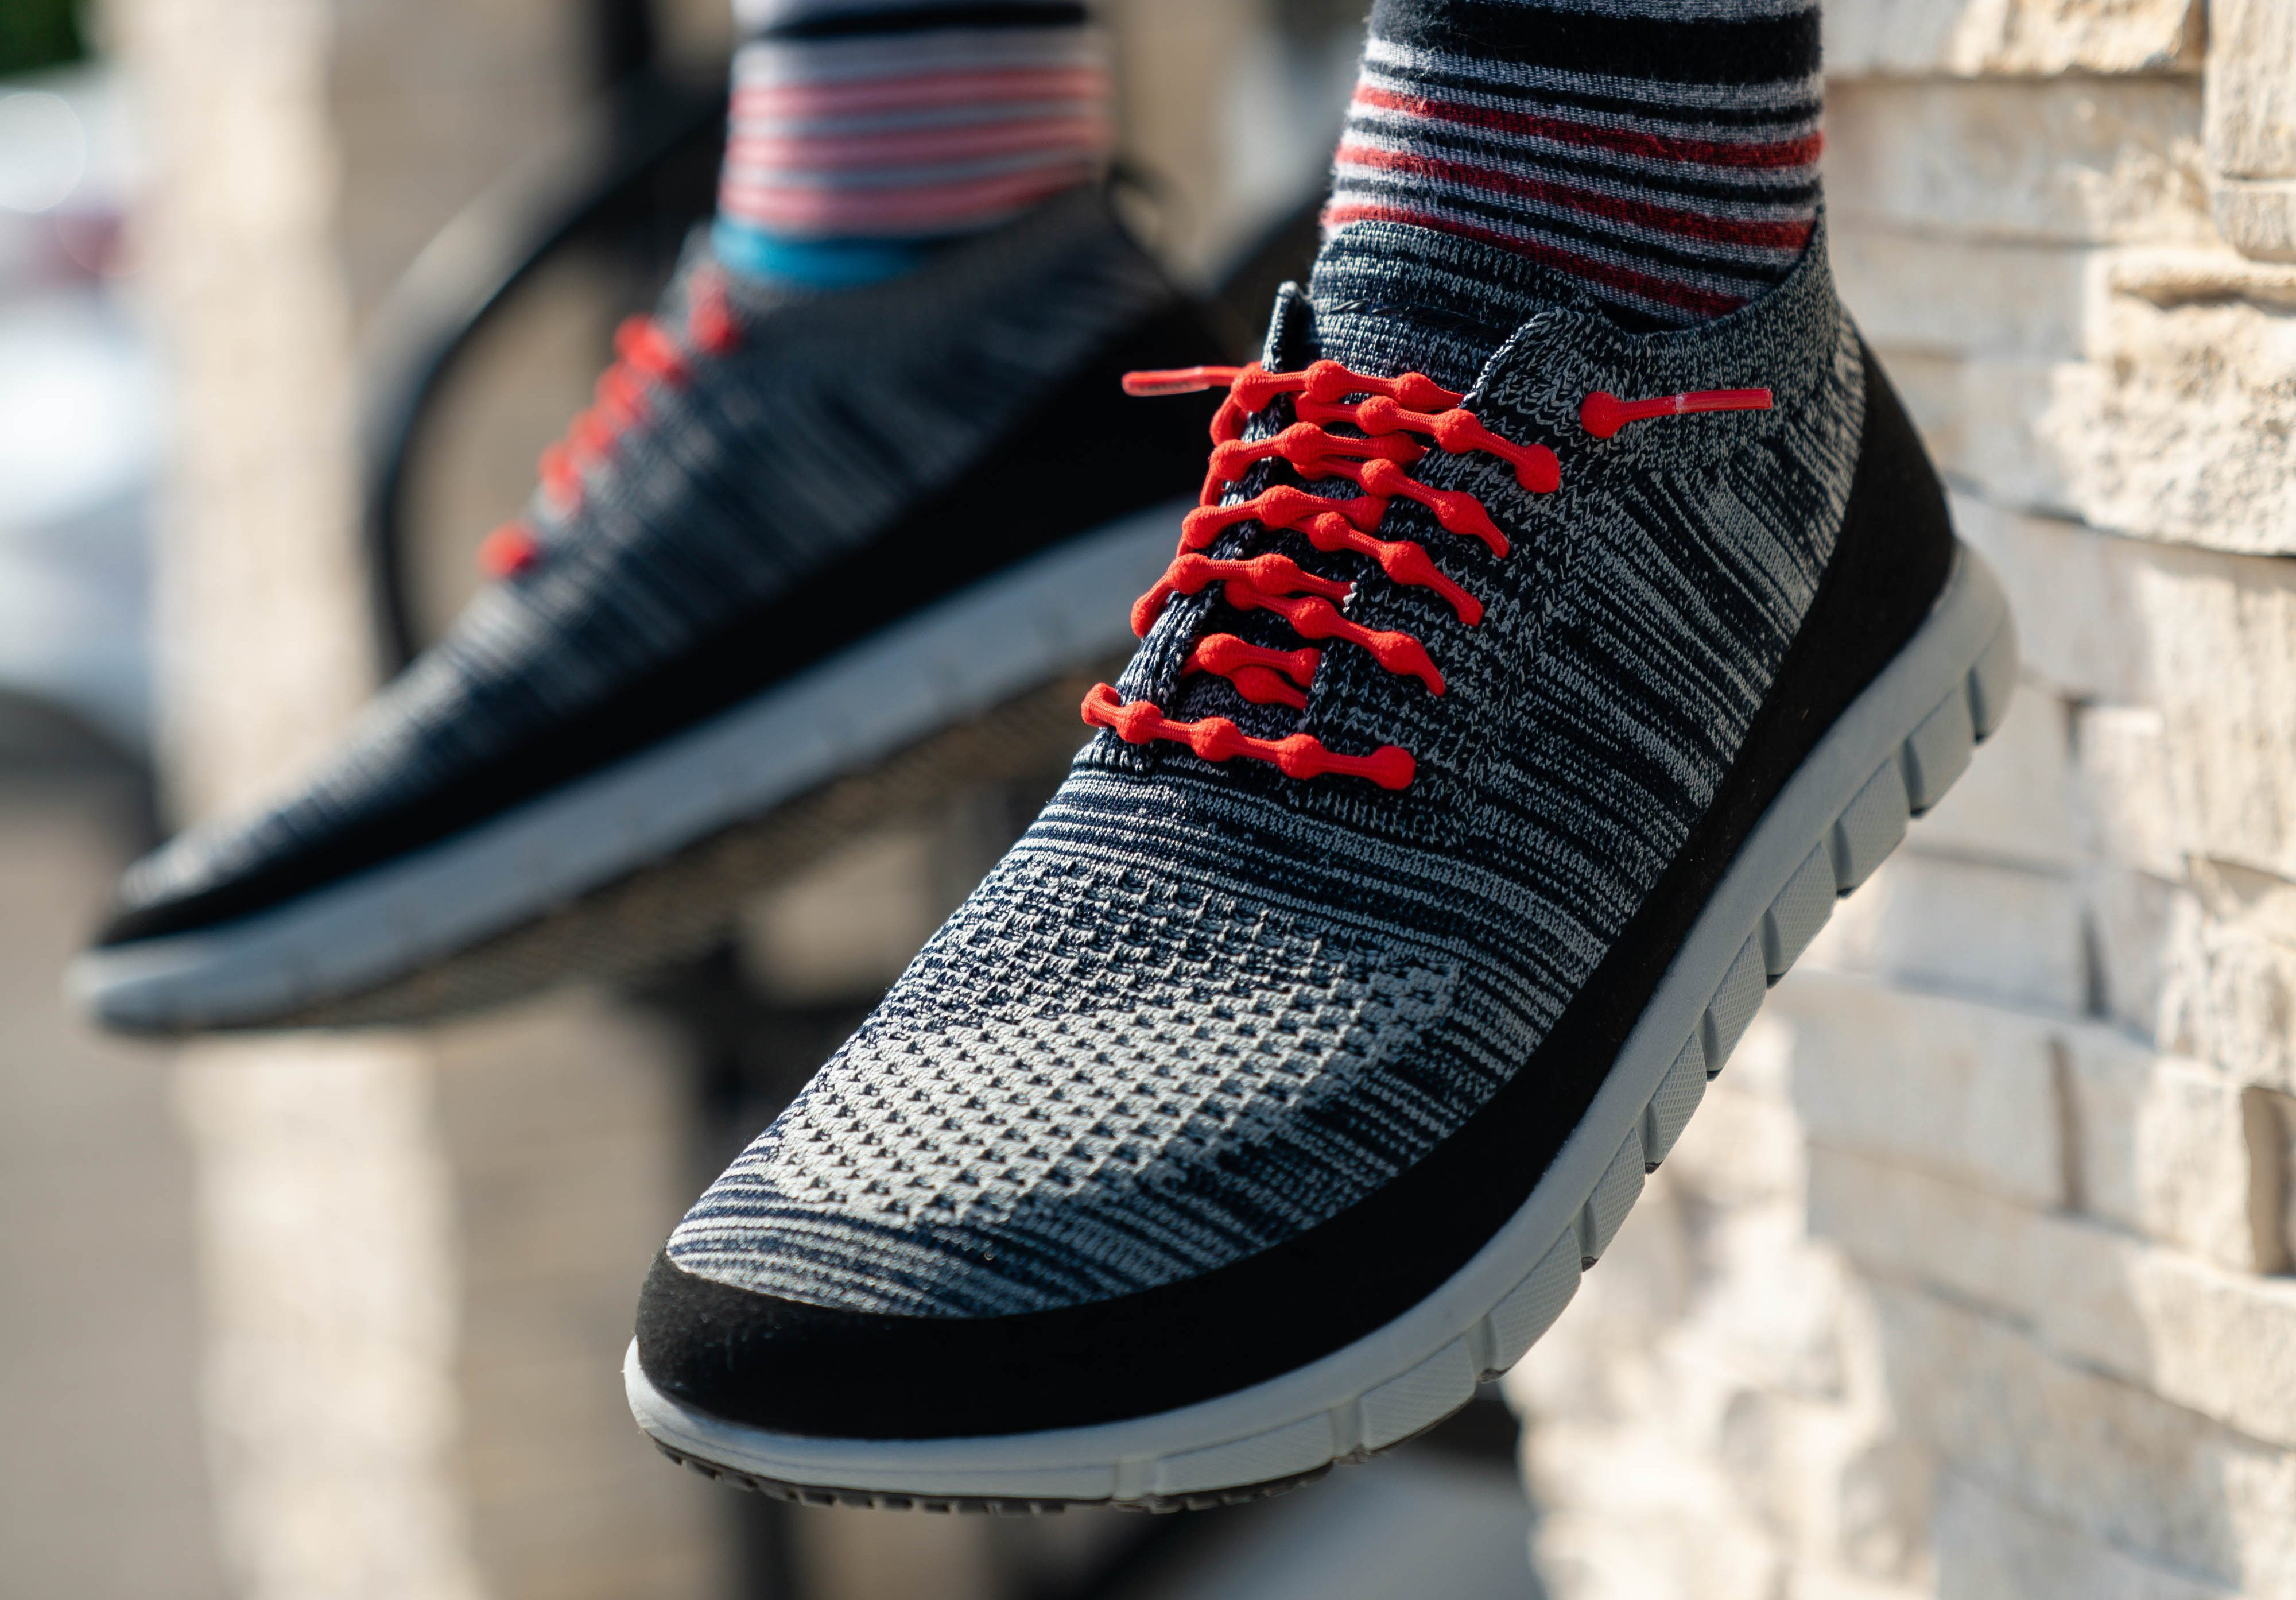 These Shoelace Alternatives Tackle